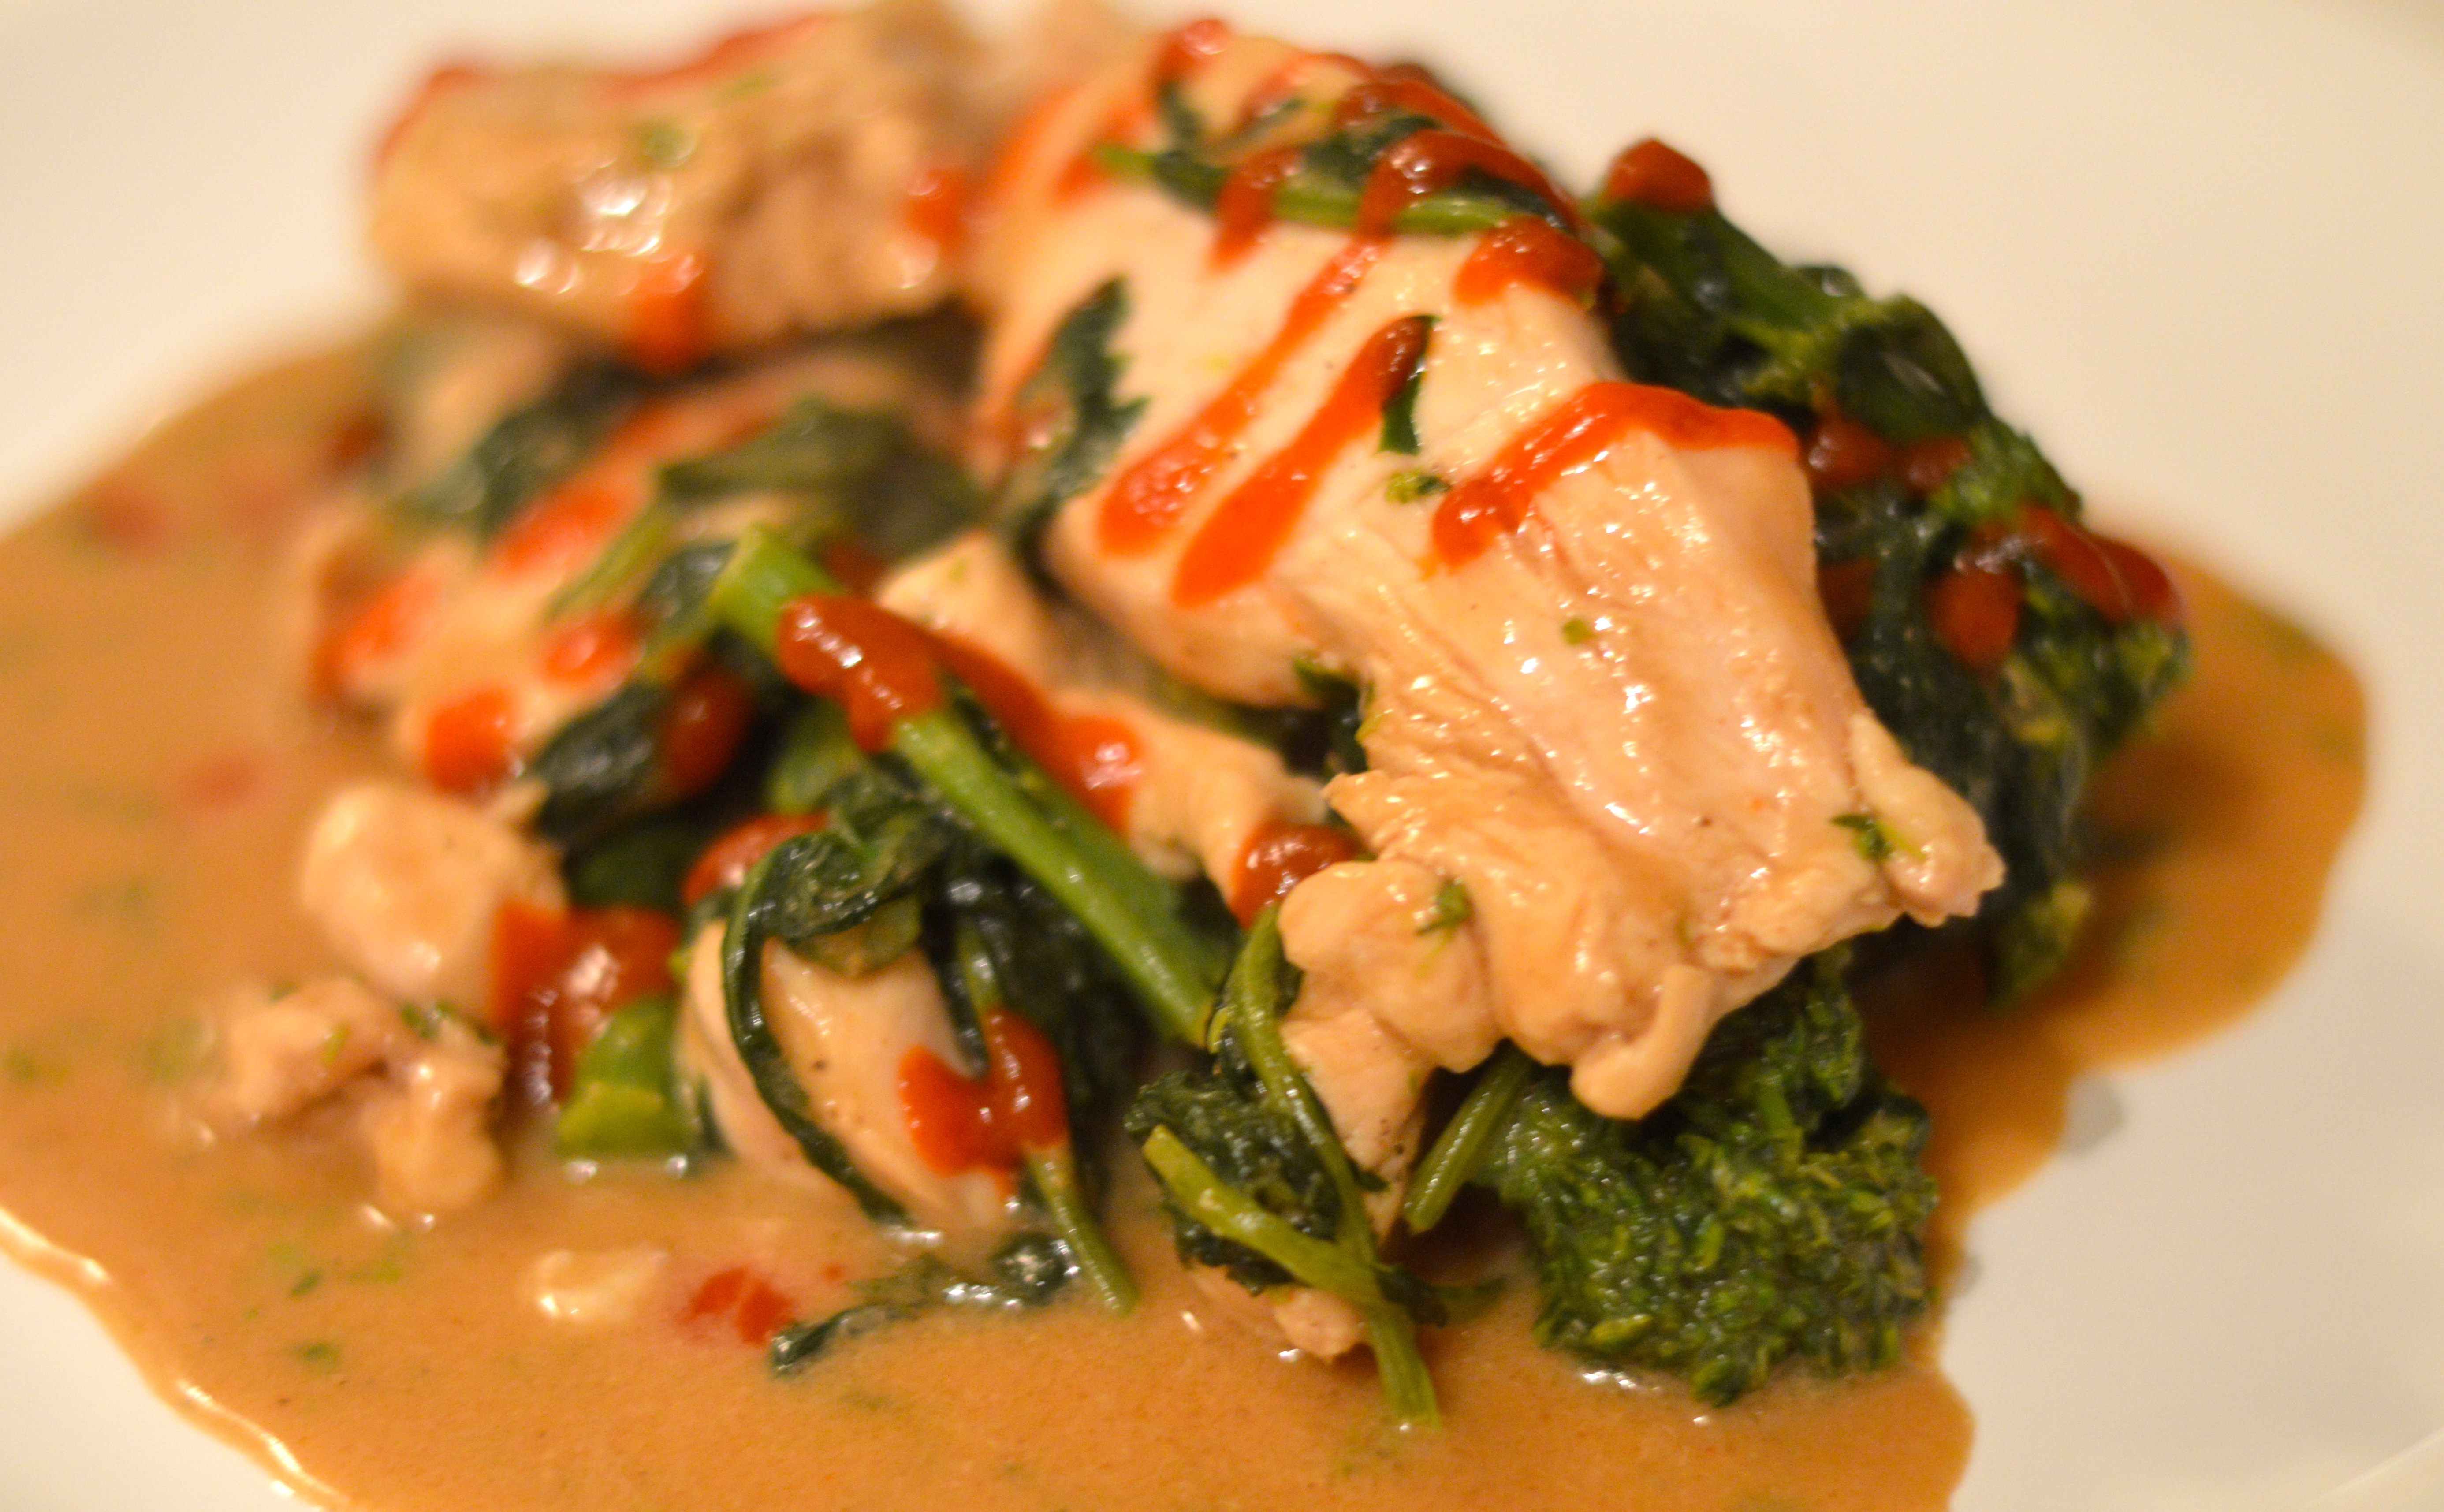 Chicken And Broccoli Rabe Stir-Fry With Spicy Peanut Sauce -6694